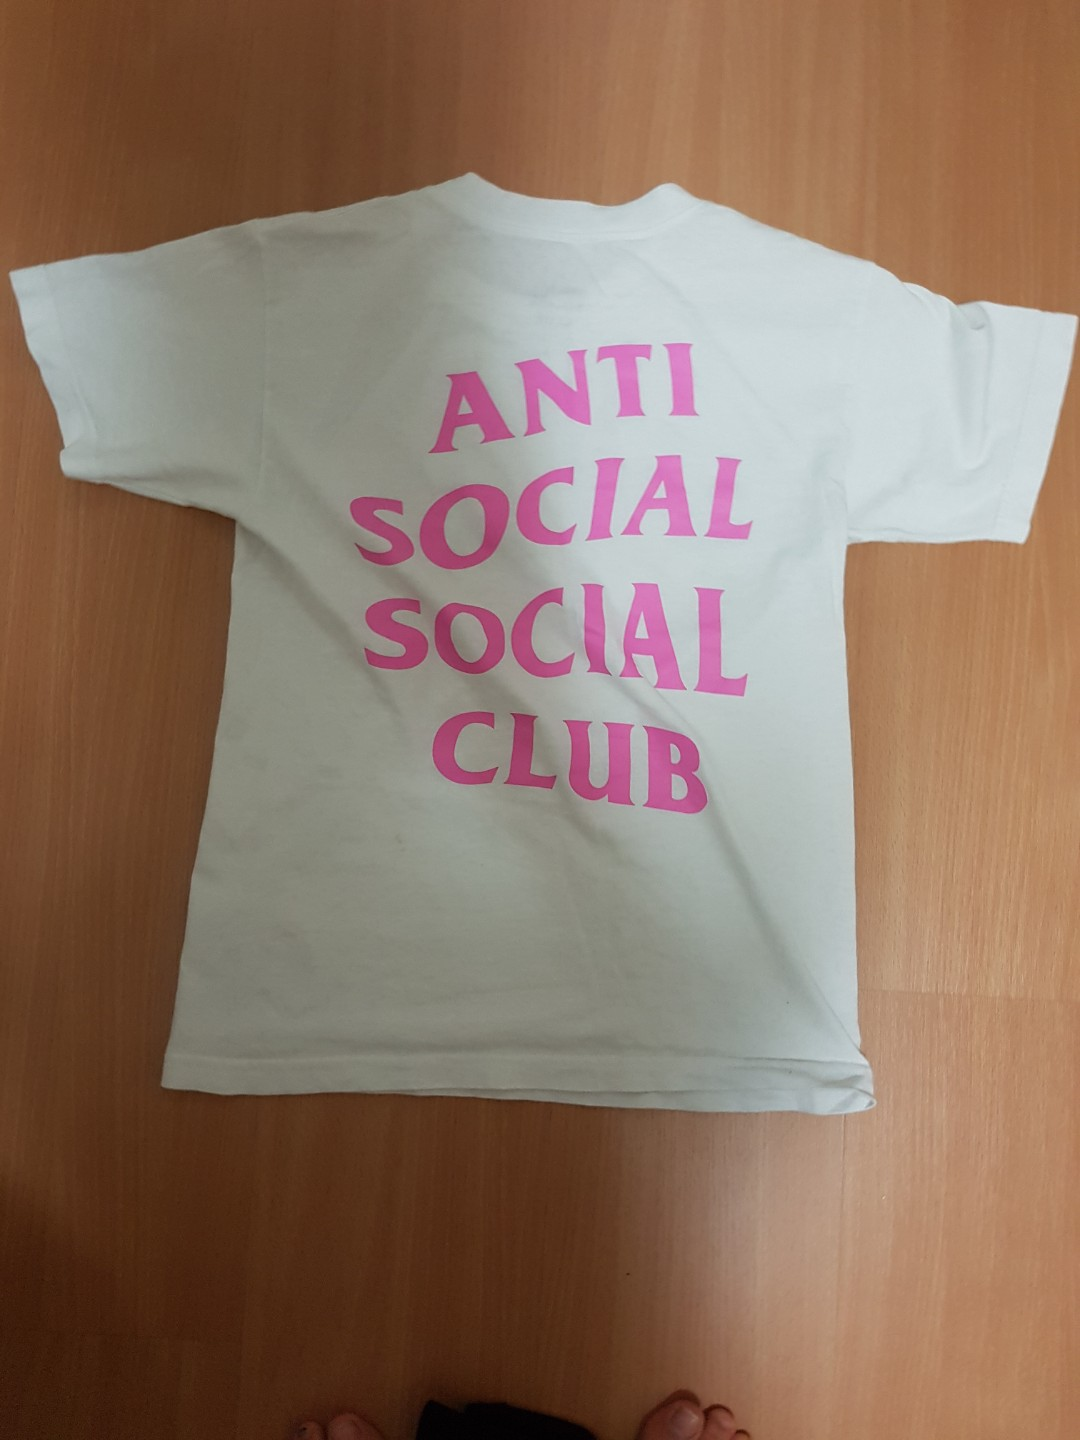 superior quality 7d5ca eb9a3  Authentic  Anti Social Social Club Tee Shirt XS, Men s Fashion, Clothes,  Tops on Carousell